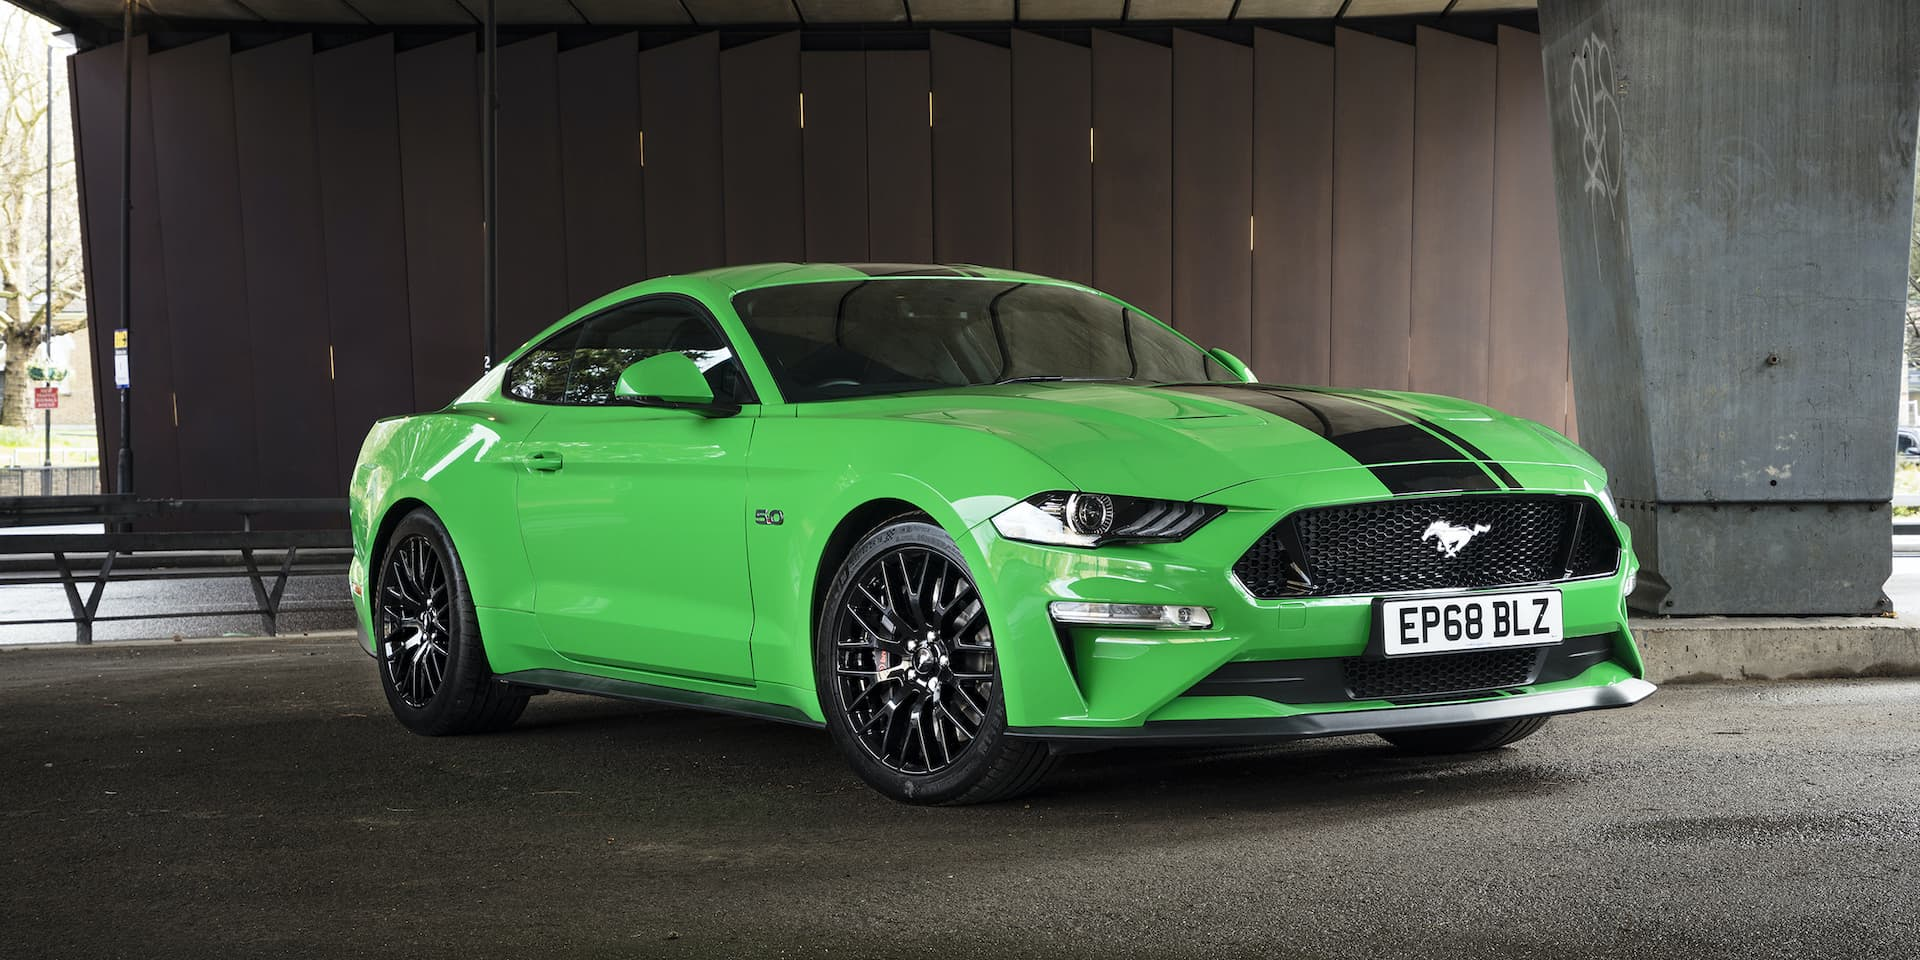 Ford Mustang (2016 onwards) Expert Rating